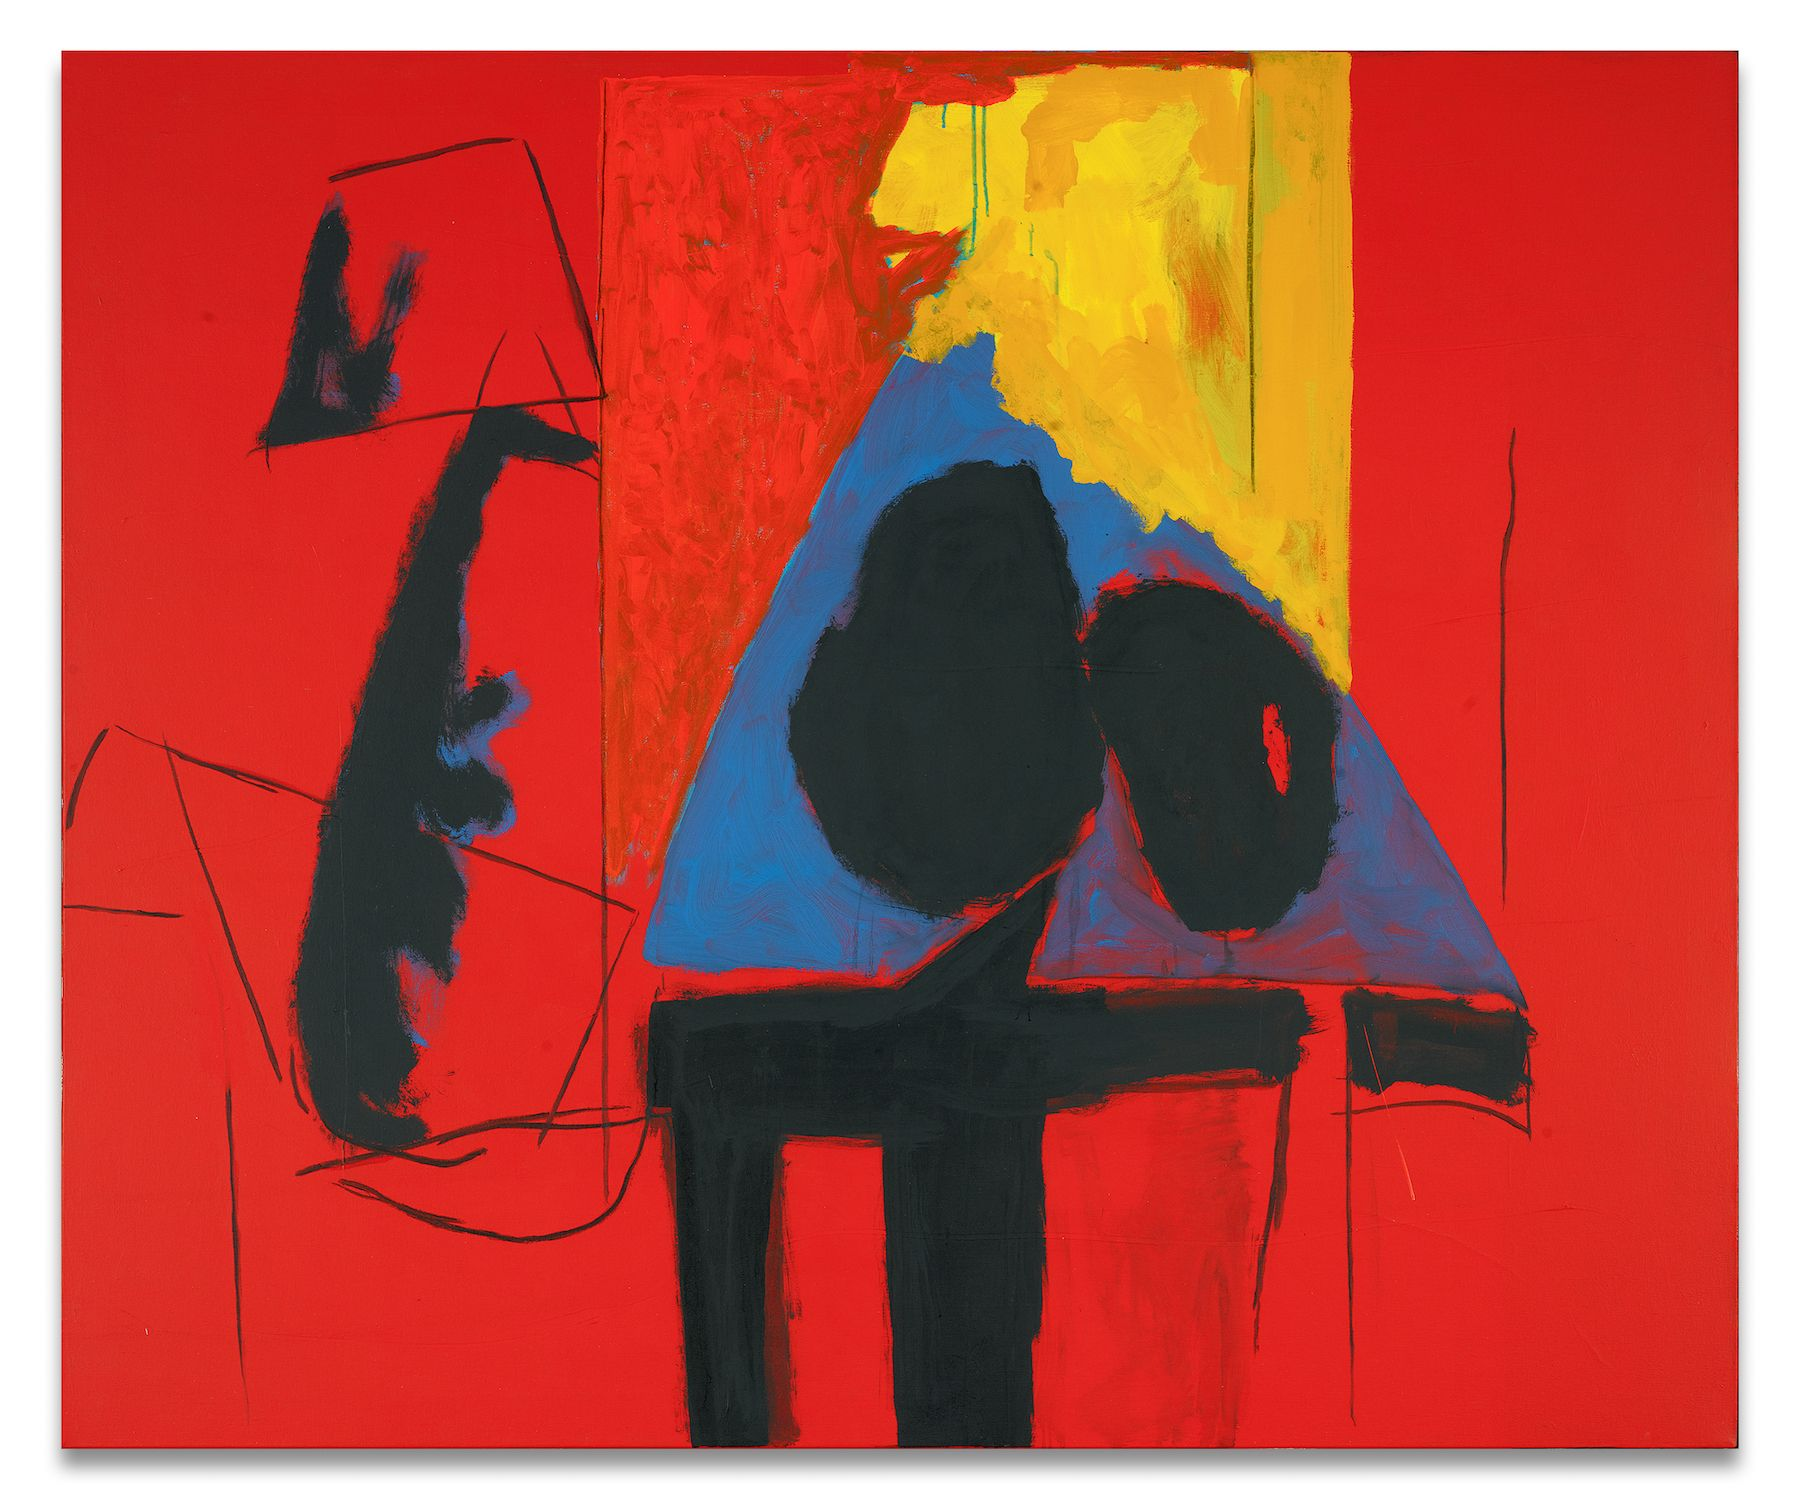 Robert Motherwell, The Studio, 1987, Acrylic and charcoal on canvas, 60 x 72 inches, 152.4 x 182.9 cm, MMG#30414,